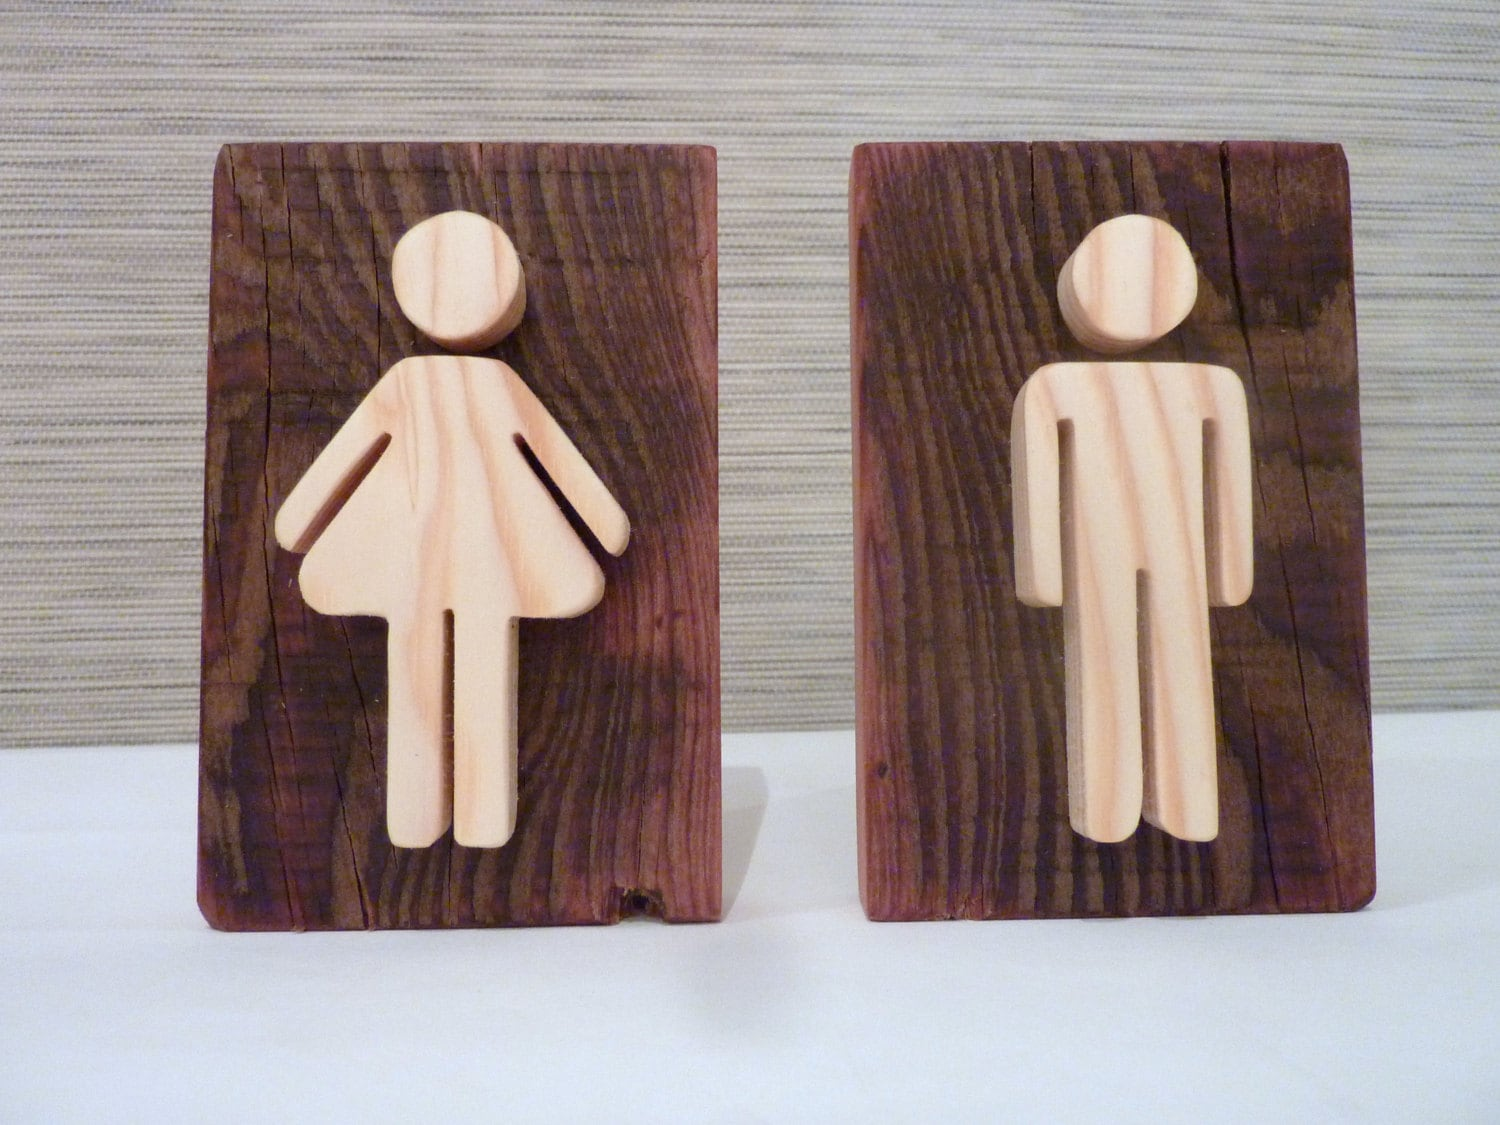 Restaurant bathroom sign wooden decor for restaurant public